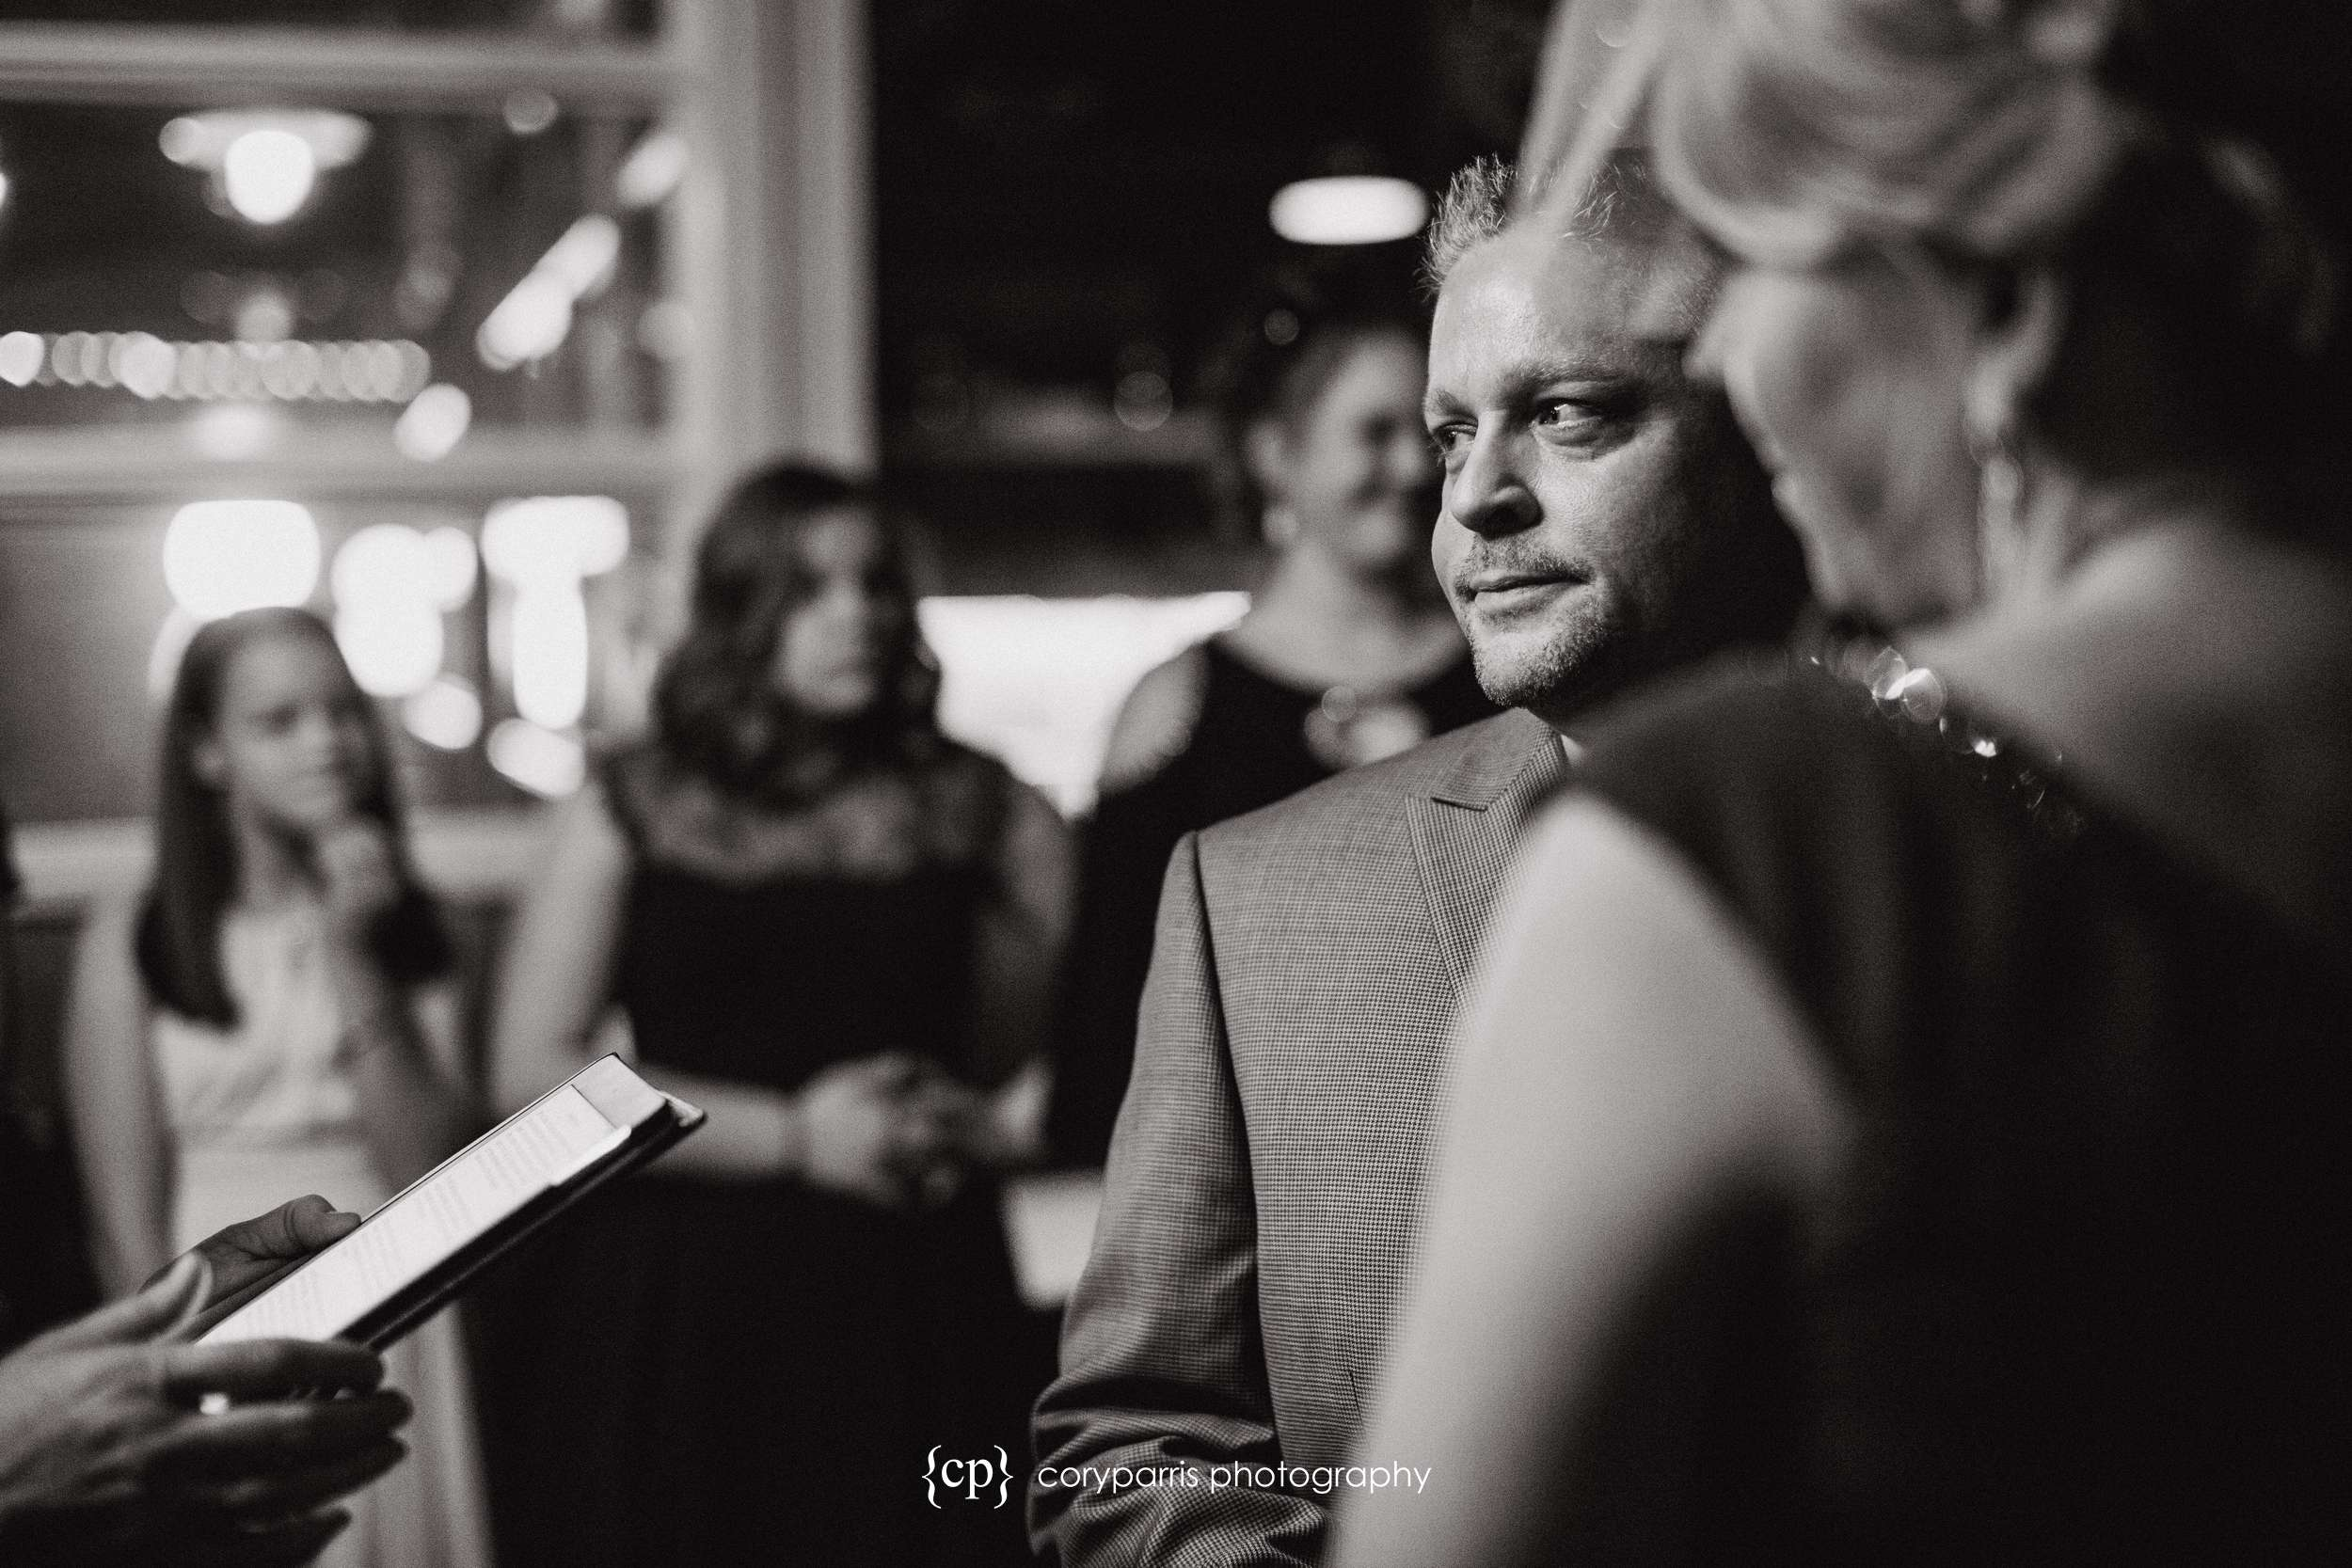 Jeff, the groom, during the wedding ceremony at Beecher's Loft